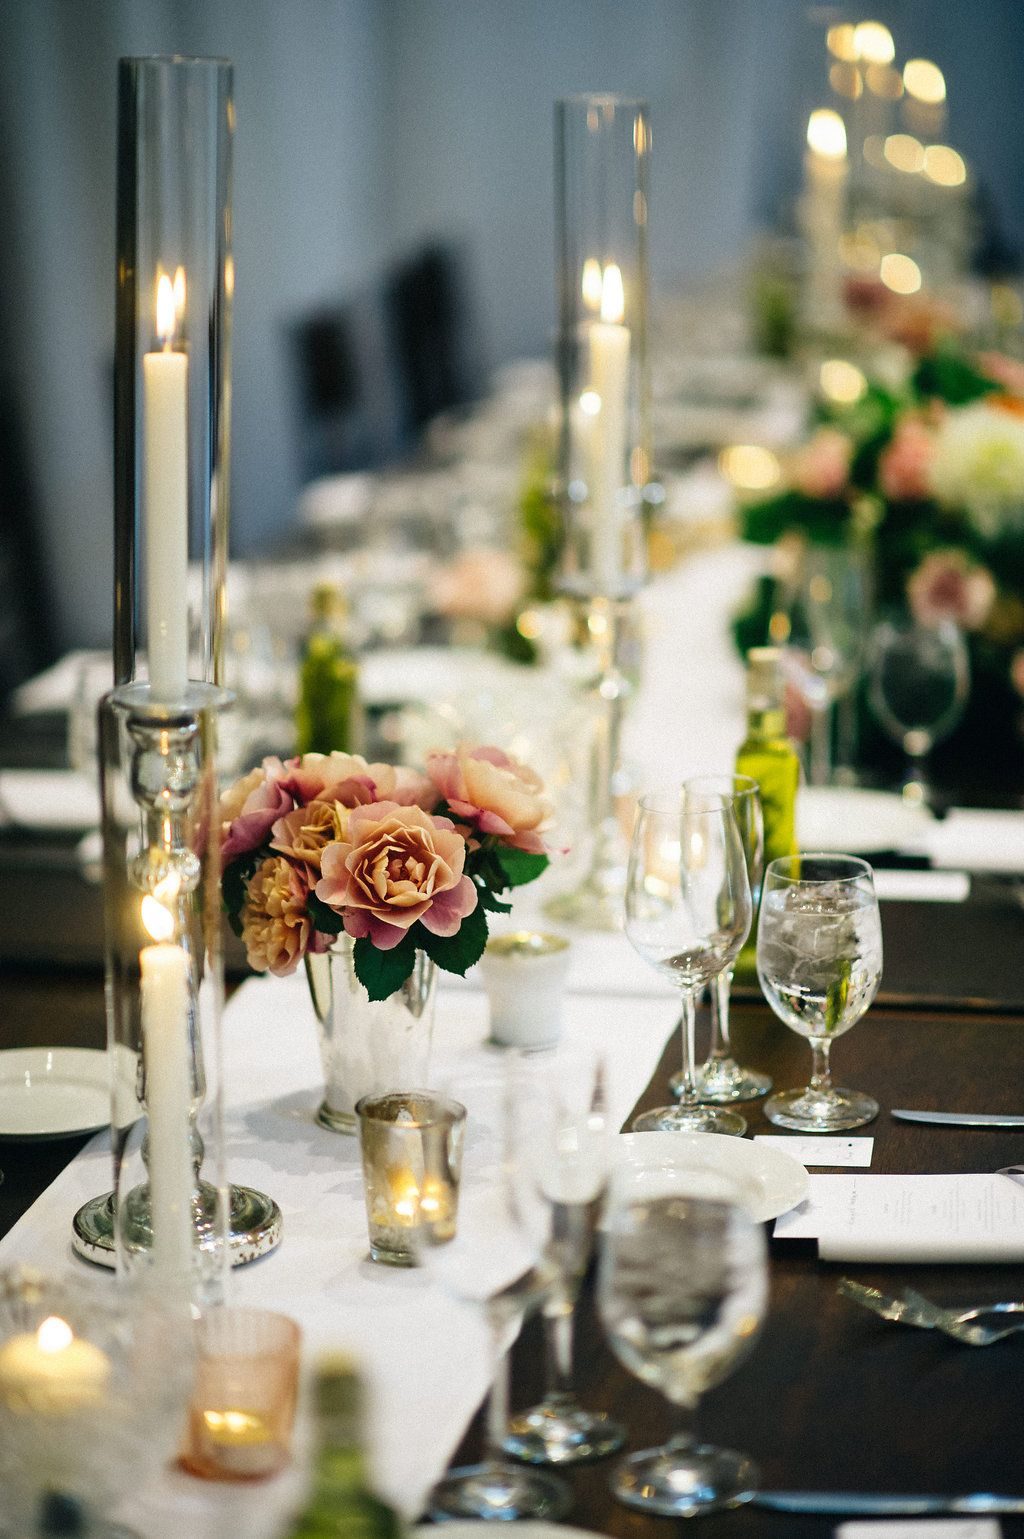 wedding tablescapes - photo by Shoda Love http://ruffledblog.com/this-elegant-wedding-has-an-amazing-escort-card-display